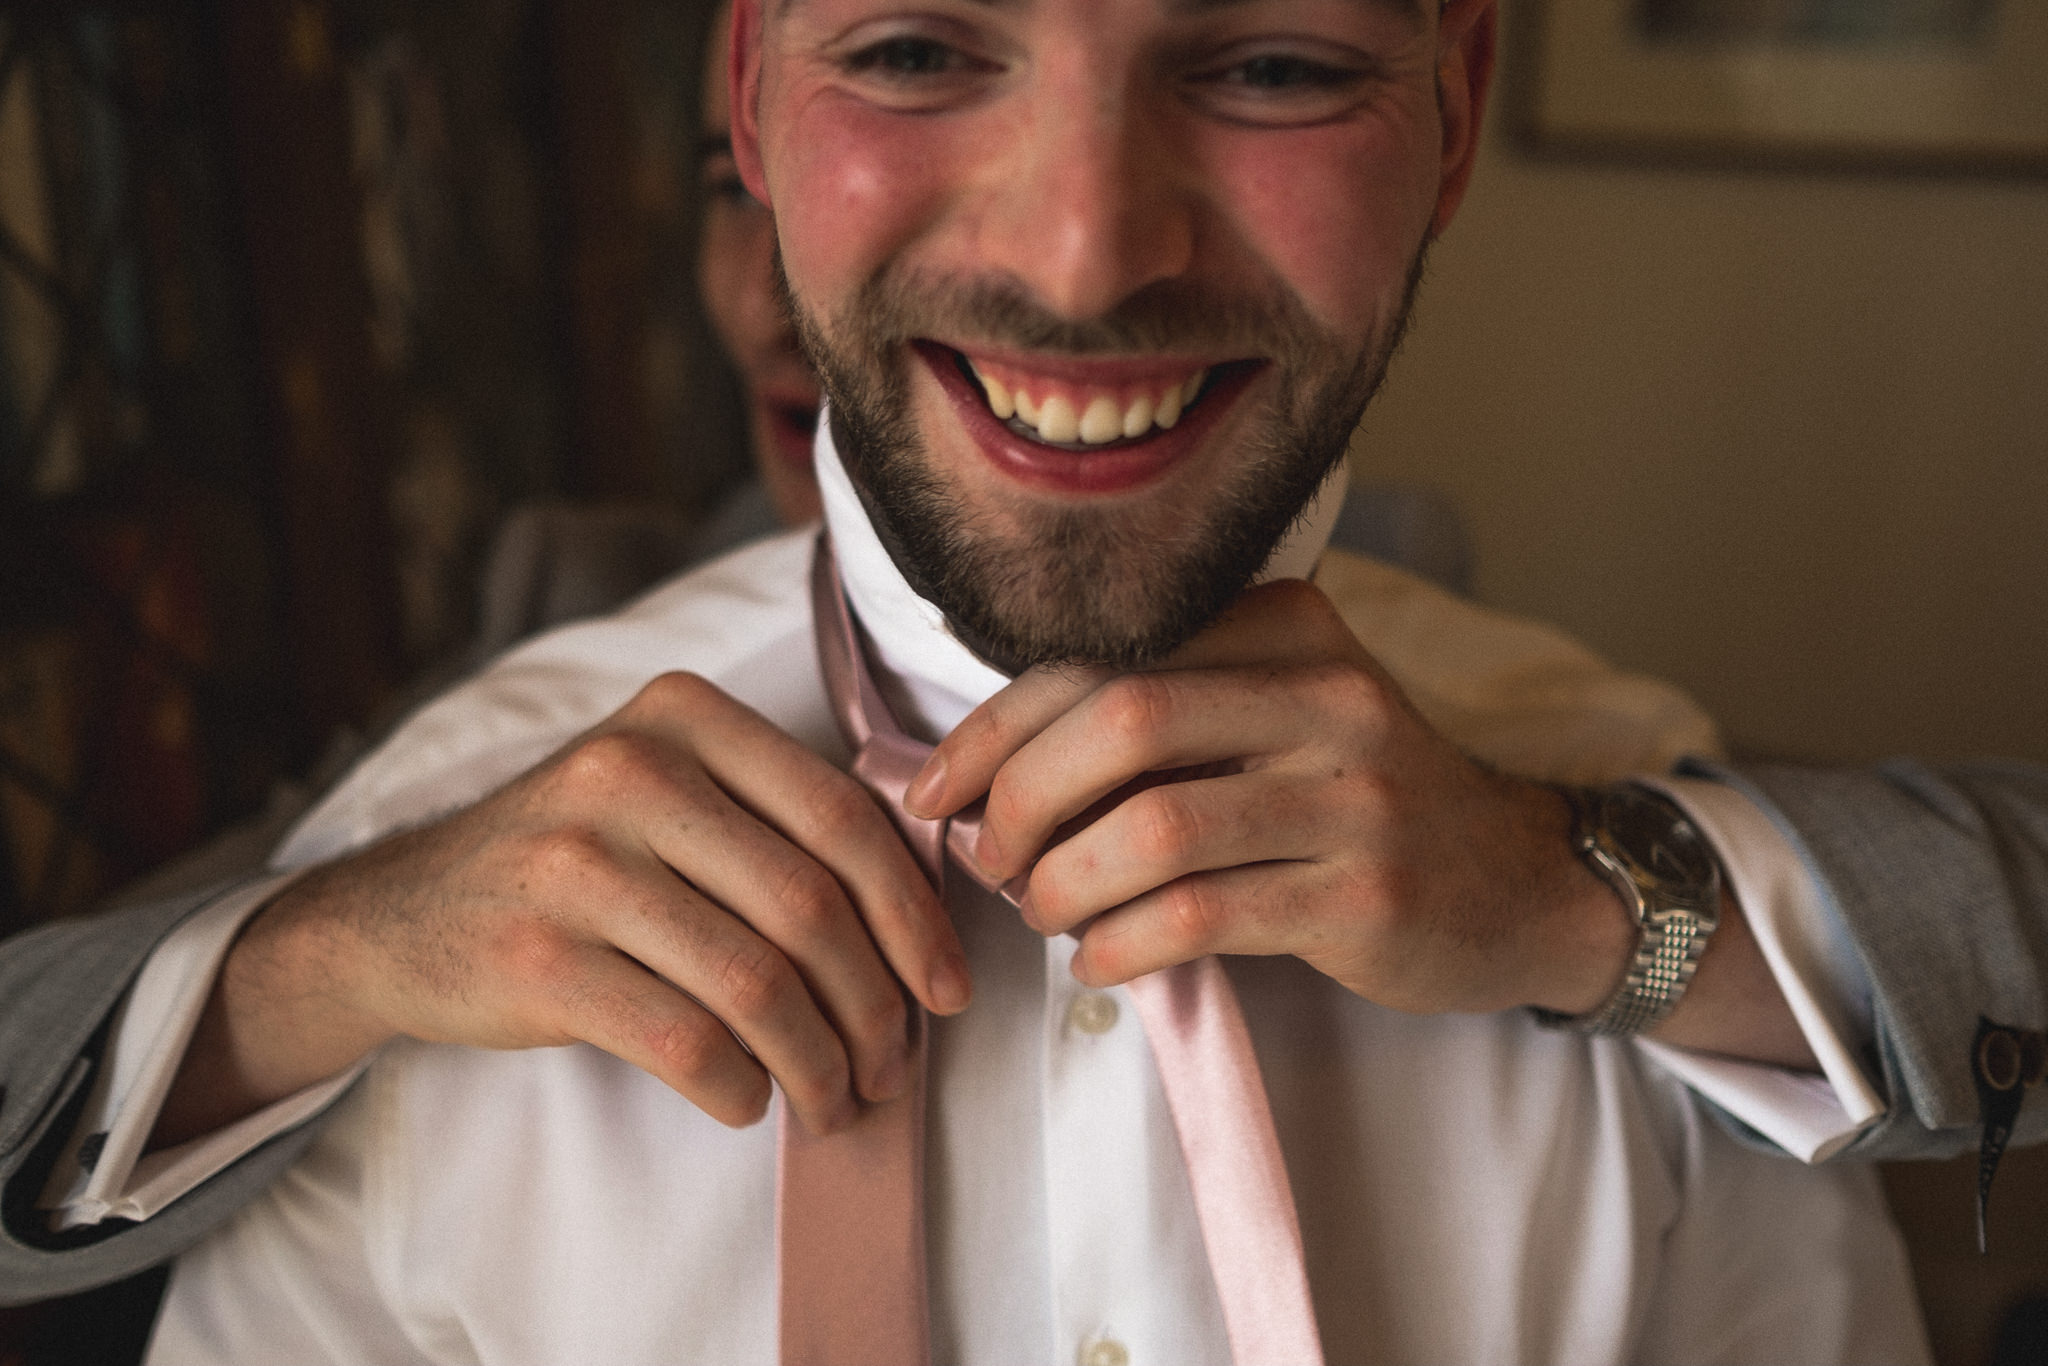 Reportage photo of groomsmen getting ready in style for wedding at Bert's Barrow Farm